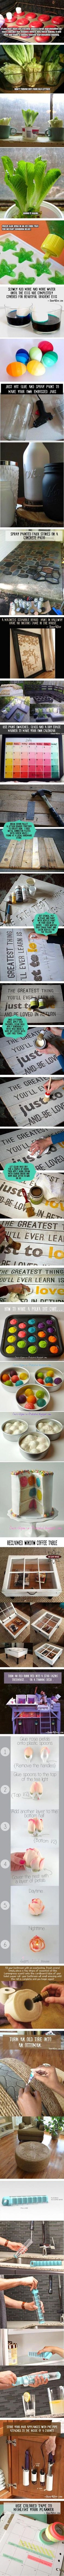 43 Amazingly simple but genius ideas to use and reuse stuff by minerva